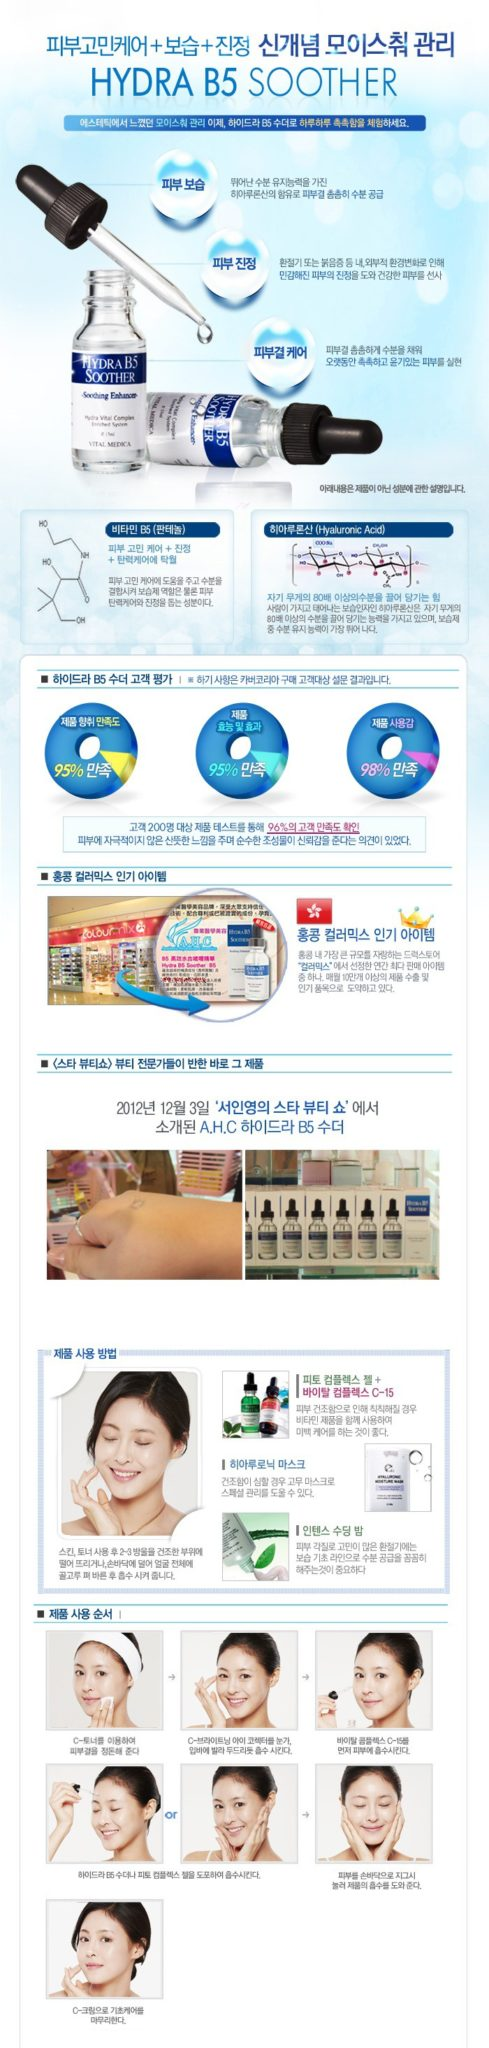 AHC Premium Hydra B5 Soother korean cosmetic skincare product online shop malaysia hong kong china1